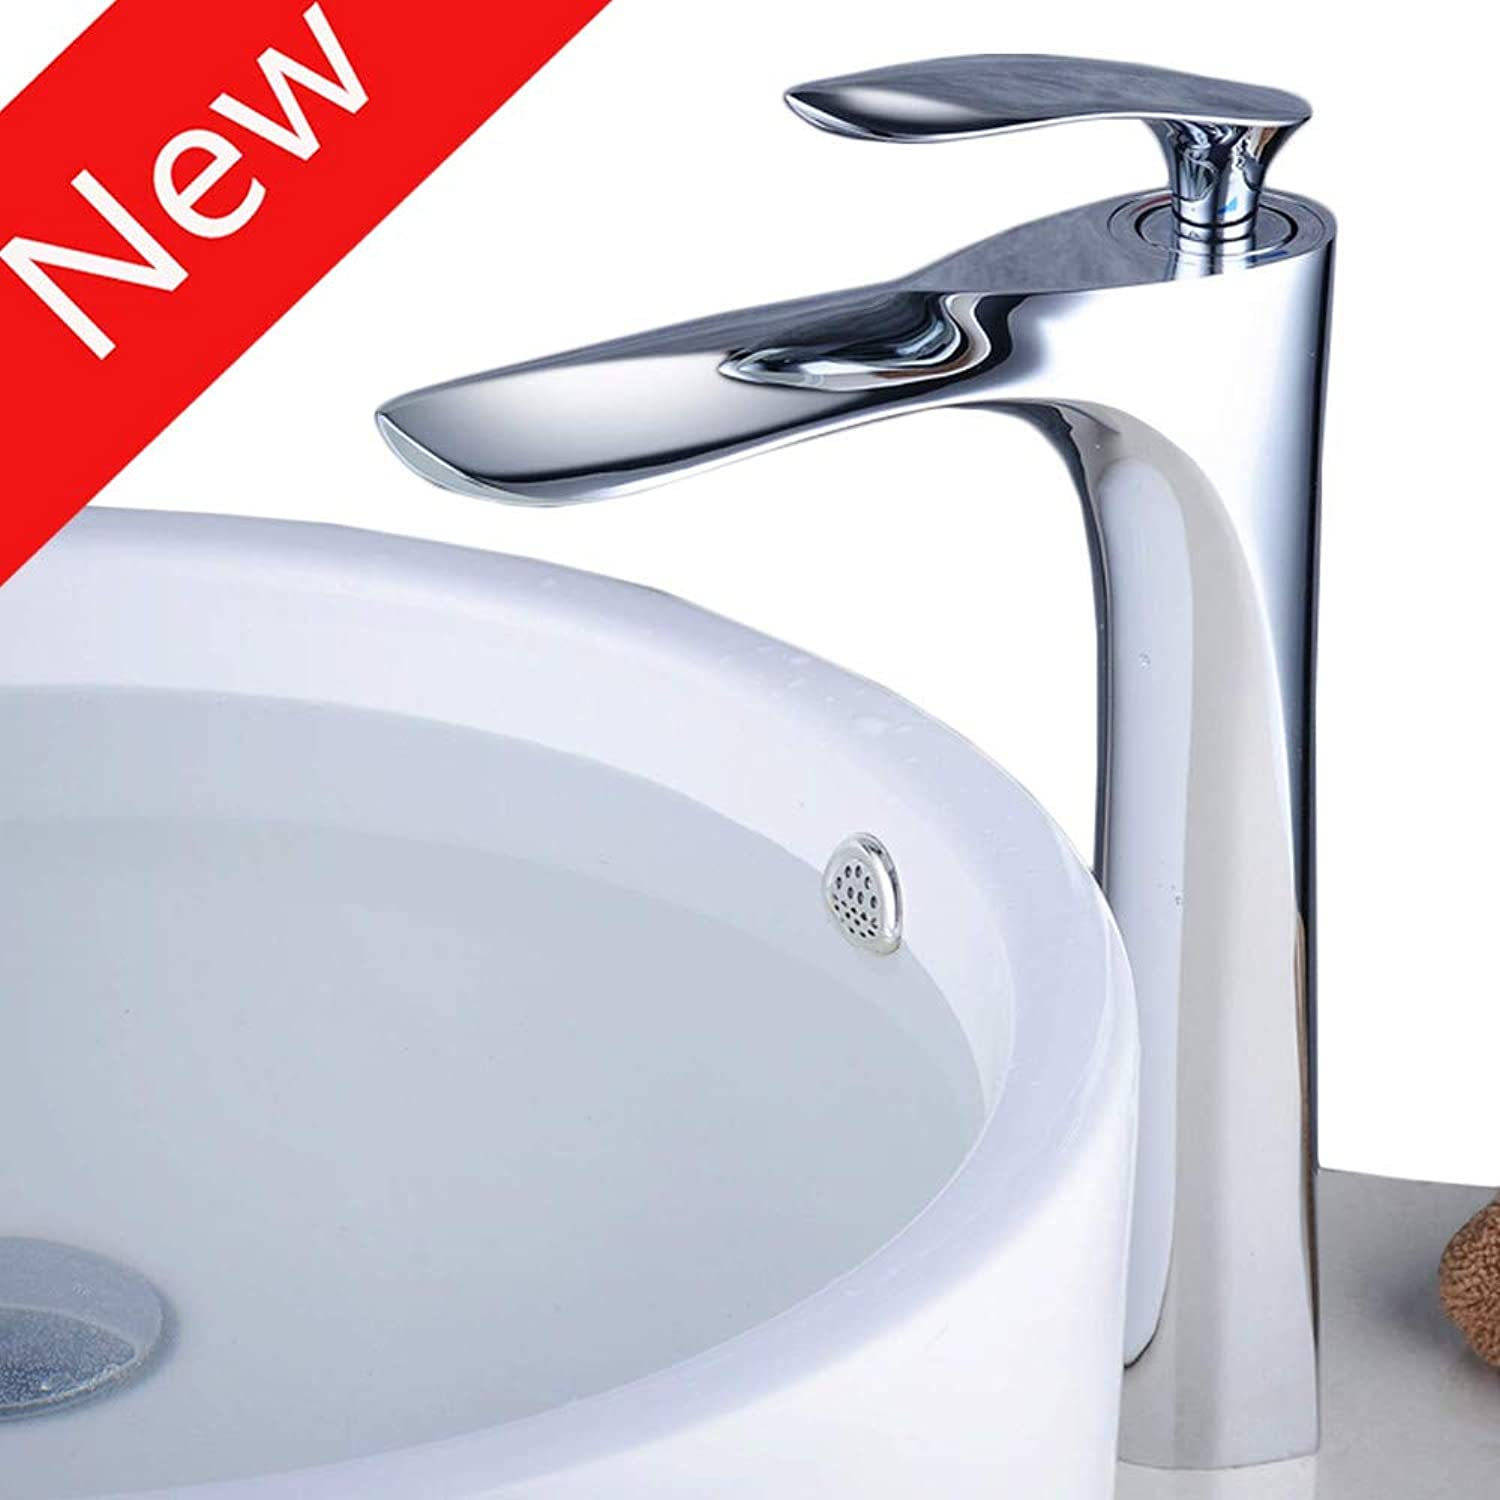 Faucettall Counter Top Basin Mixer Tap Curved Bathroom Sink Tap Designer Style,Chrome